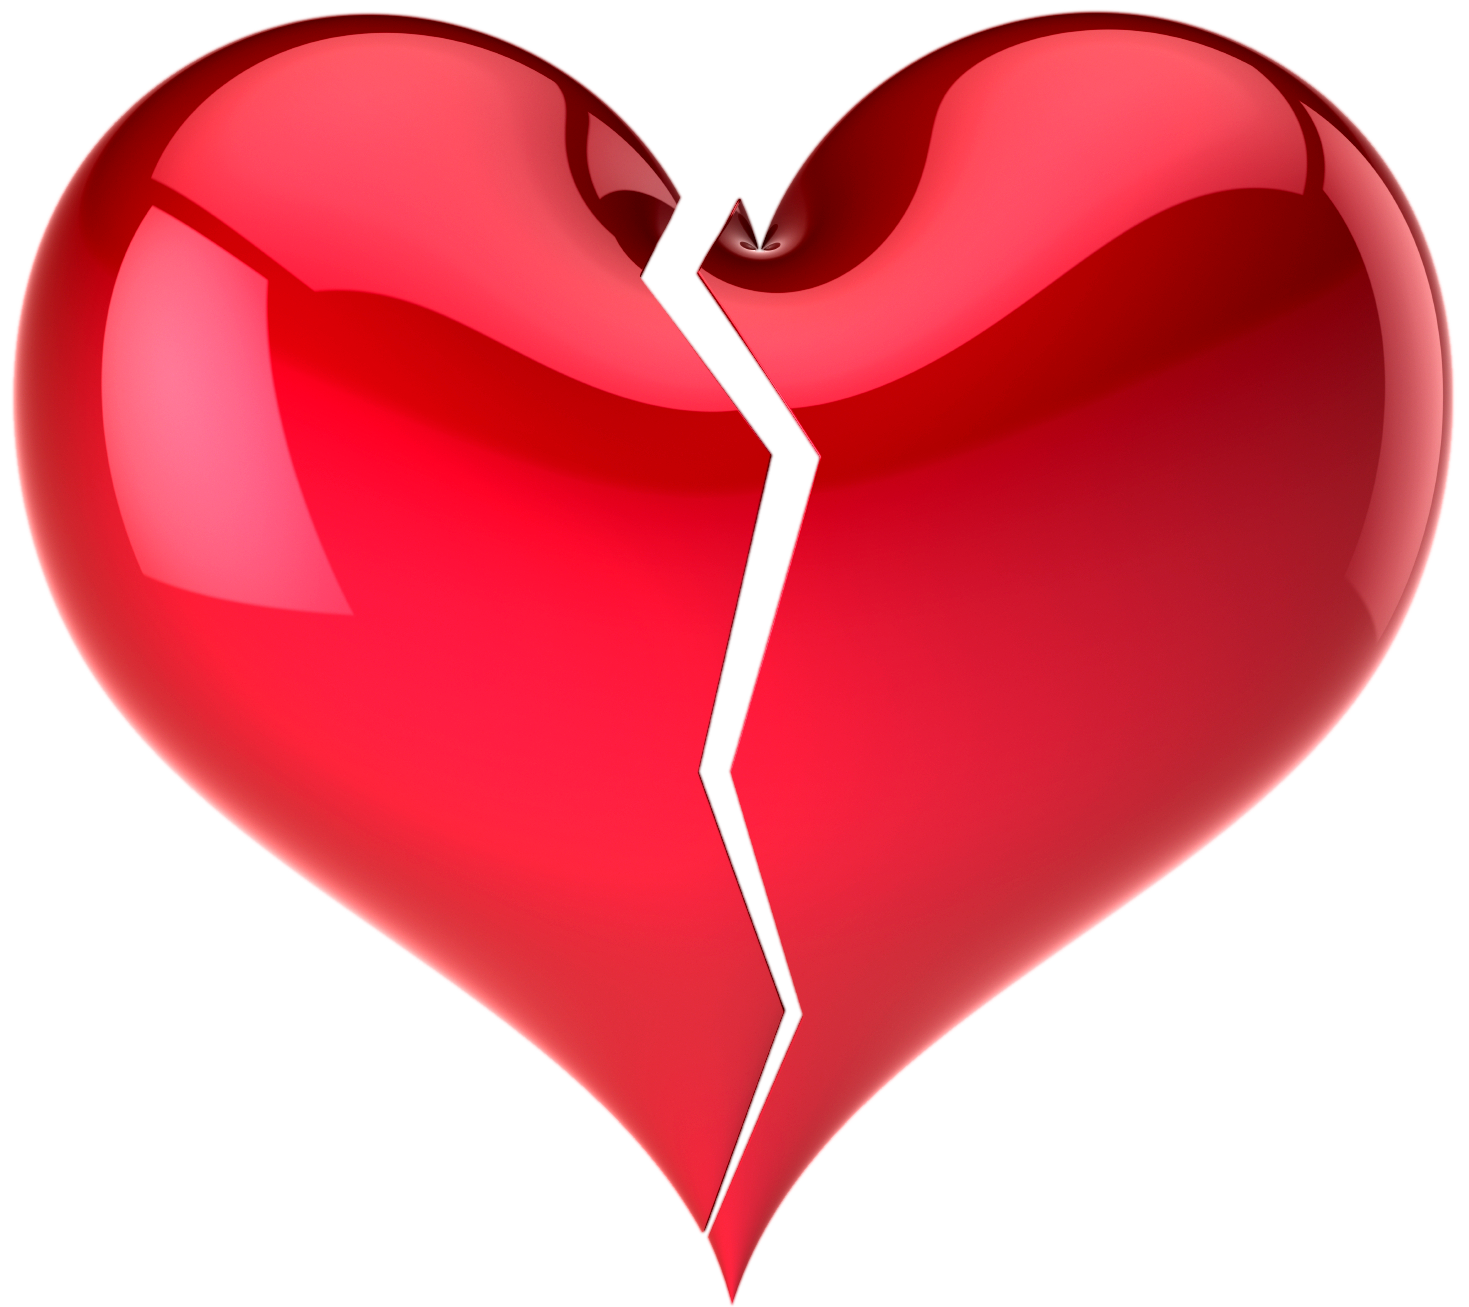 Free Heart Png Images With Transparent Background, Download Free ... svg freeuse